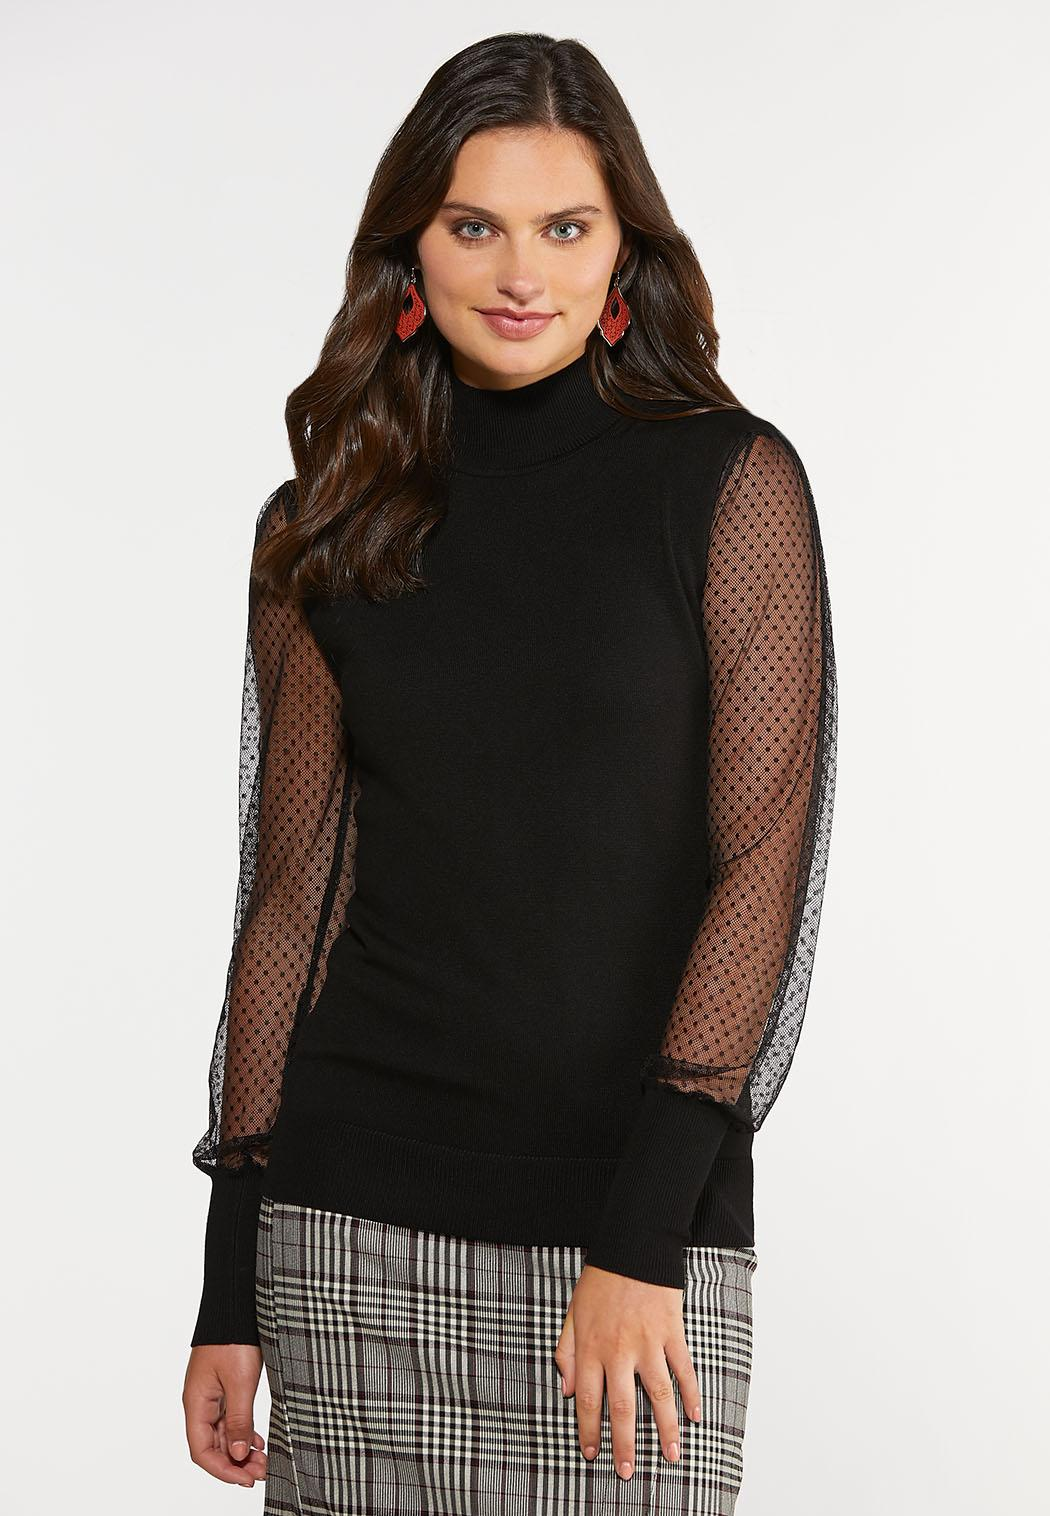 Dotted Mesh Sleeve Top